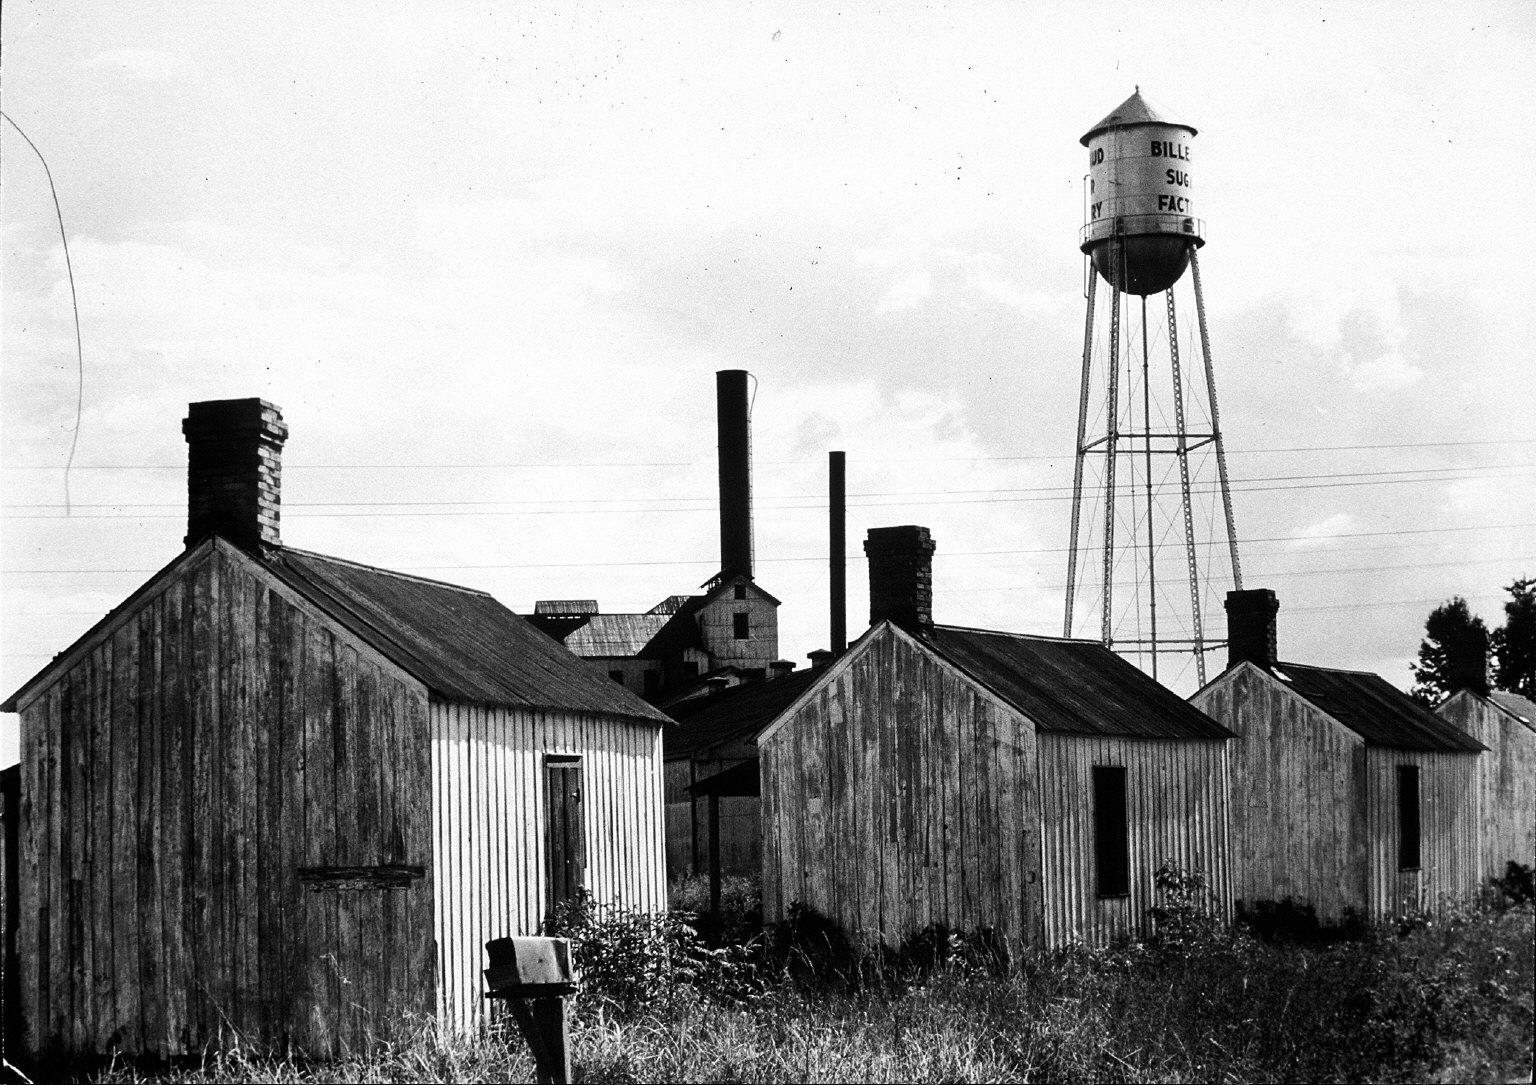 Workers' houses at the Billeaud Sugar Factory at Broussard, Louisiana